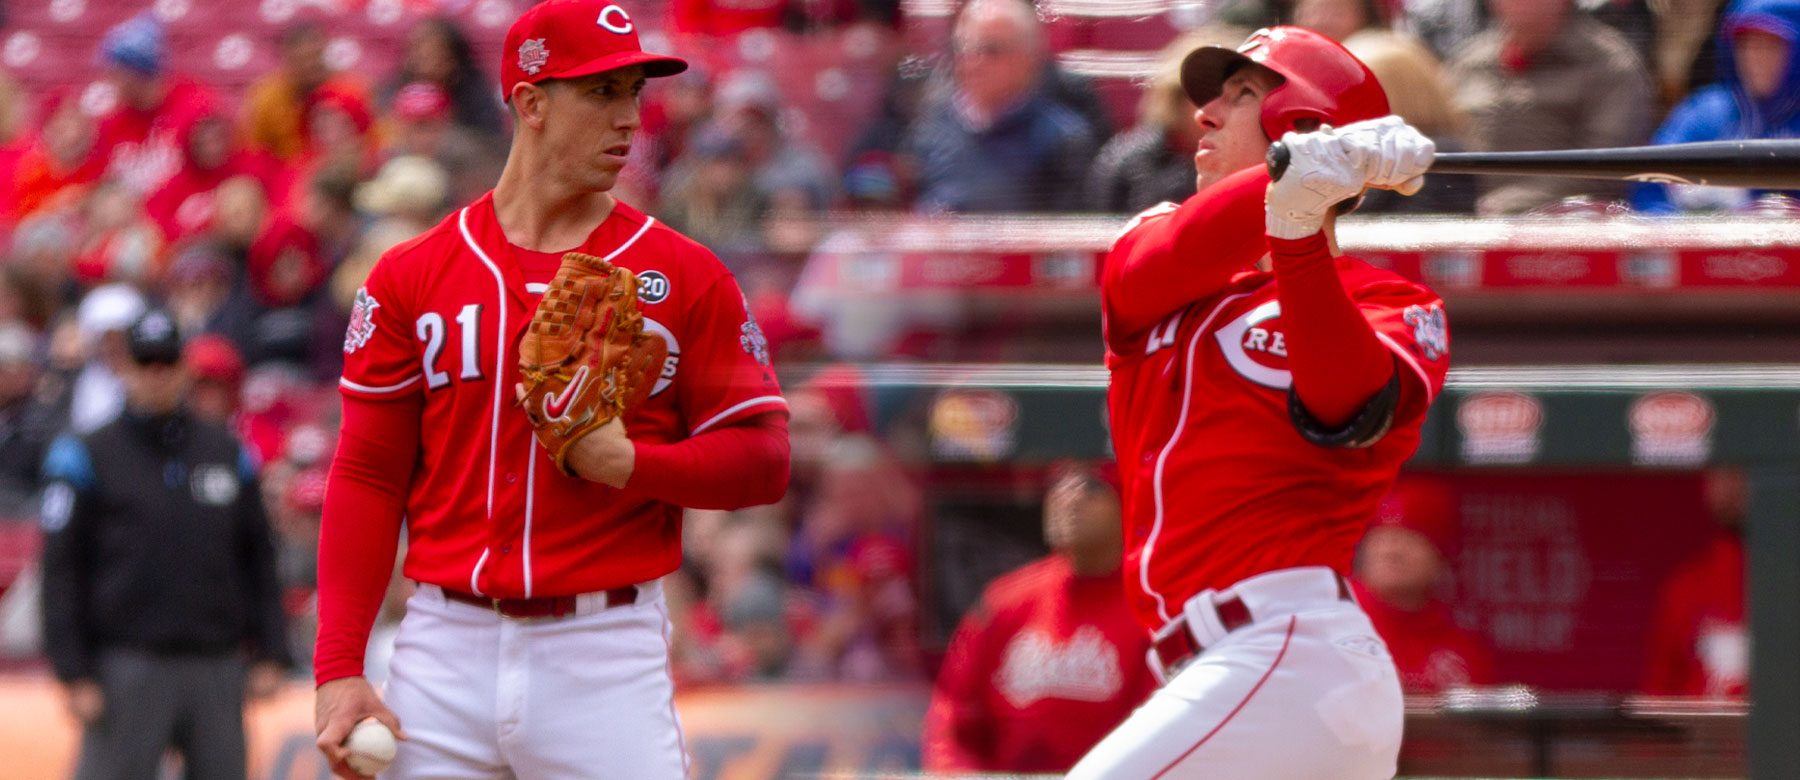 Did the Reds miss the boat with Michael Lorenzen?